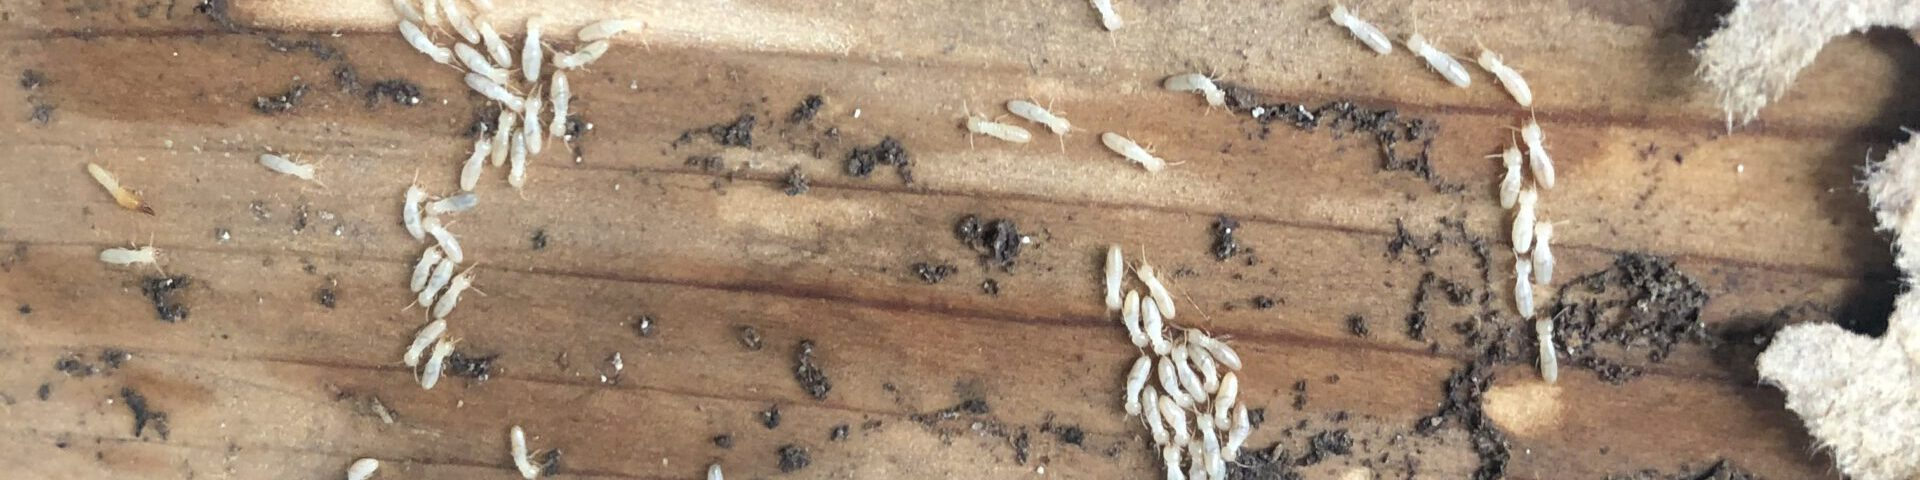 Termites due to water damage